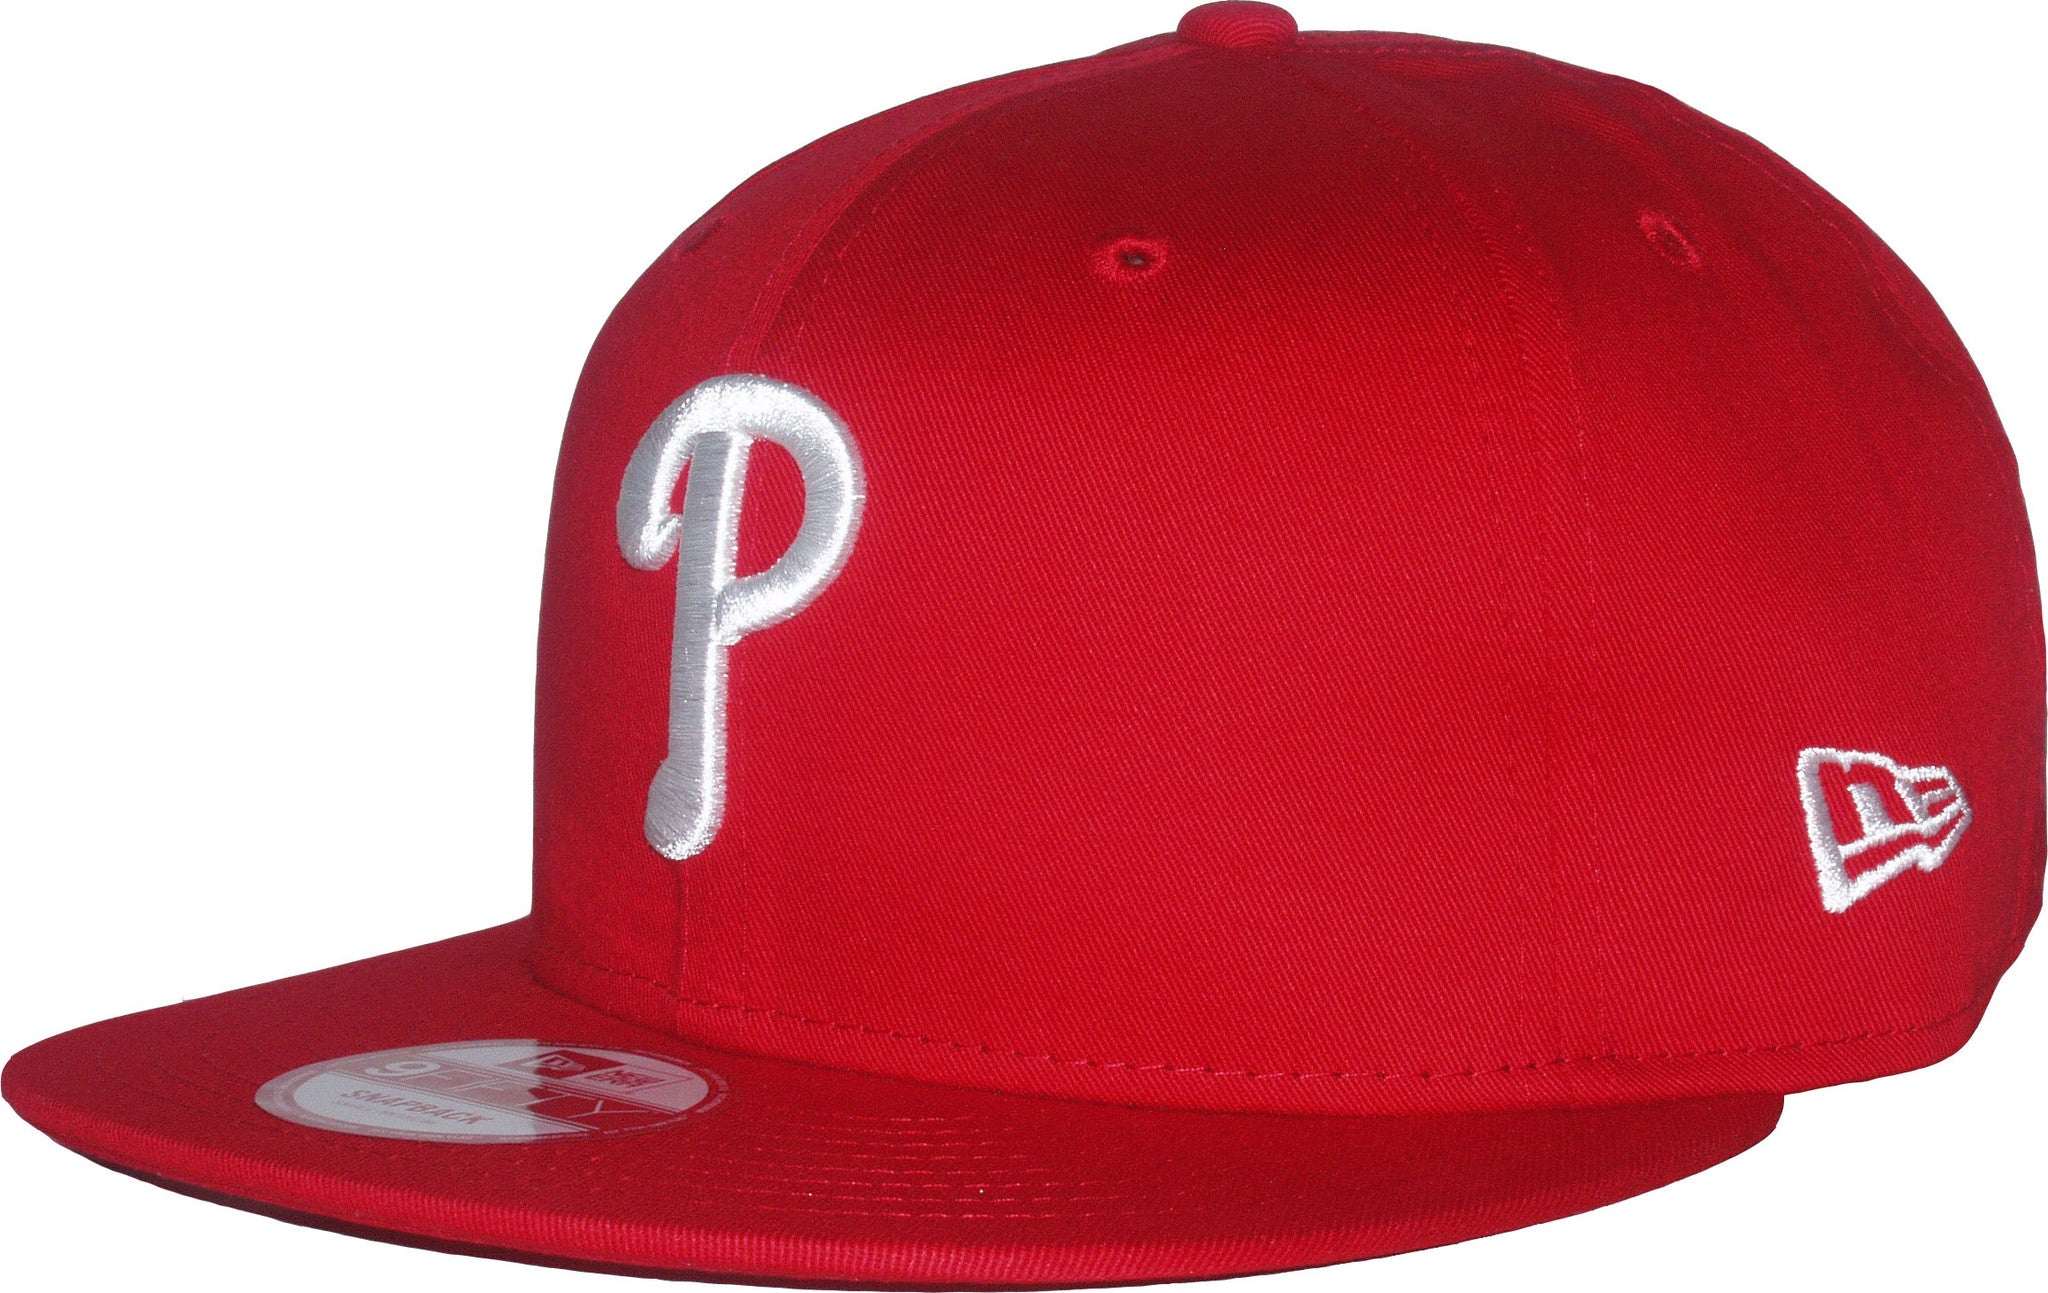 194f1bf82a7 Philadelphia Phillies New Era 950 MLB Team Snapback Baseball Cap -  pumpheadgear